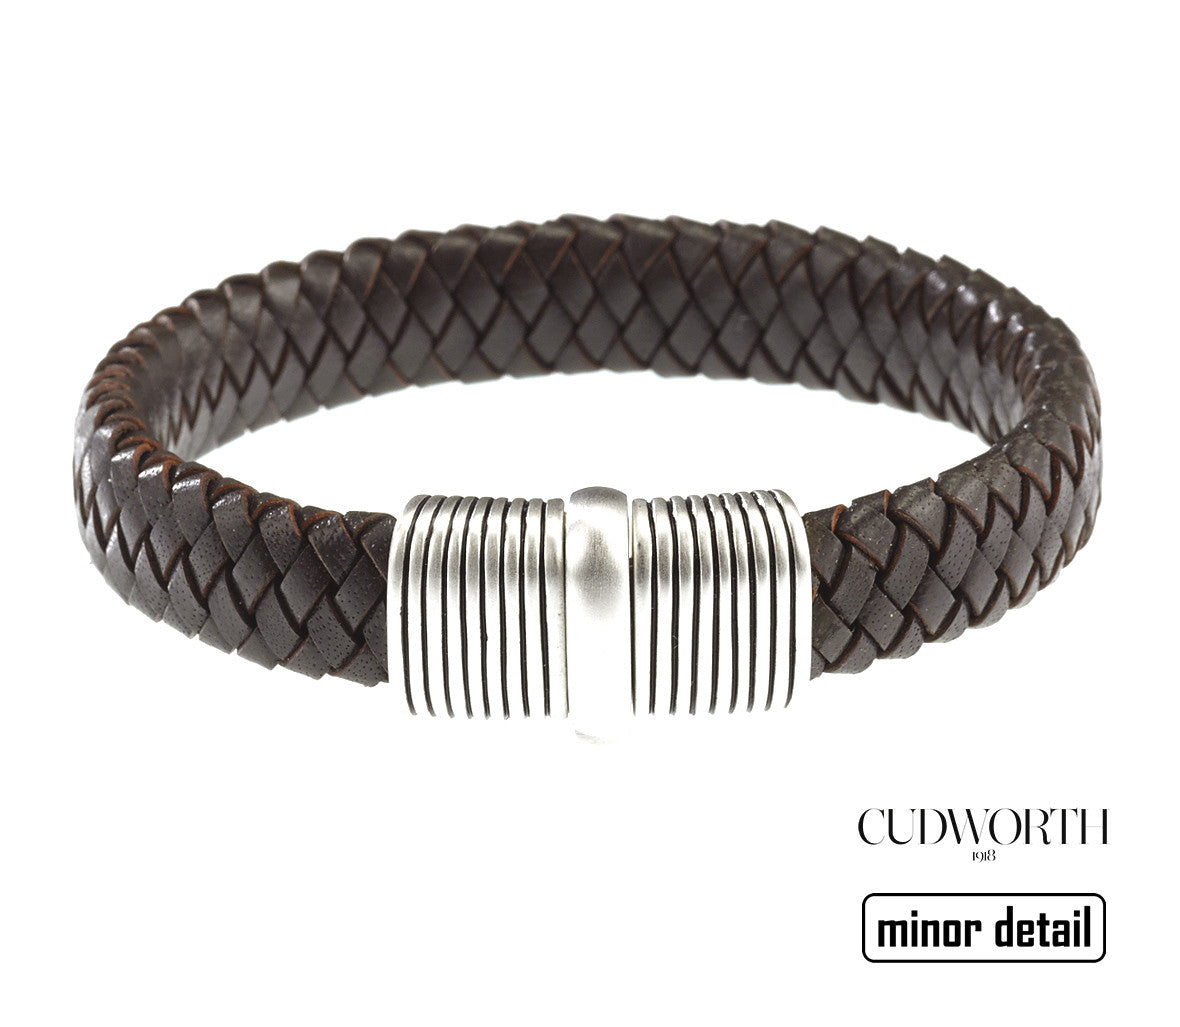 Cudworth Mens Broad Brown Leather Bracelet with Sterling Silver Clasp